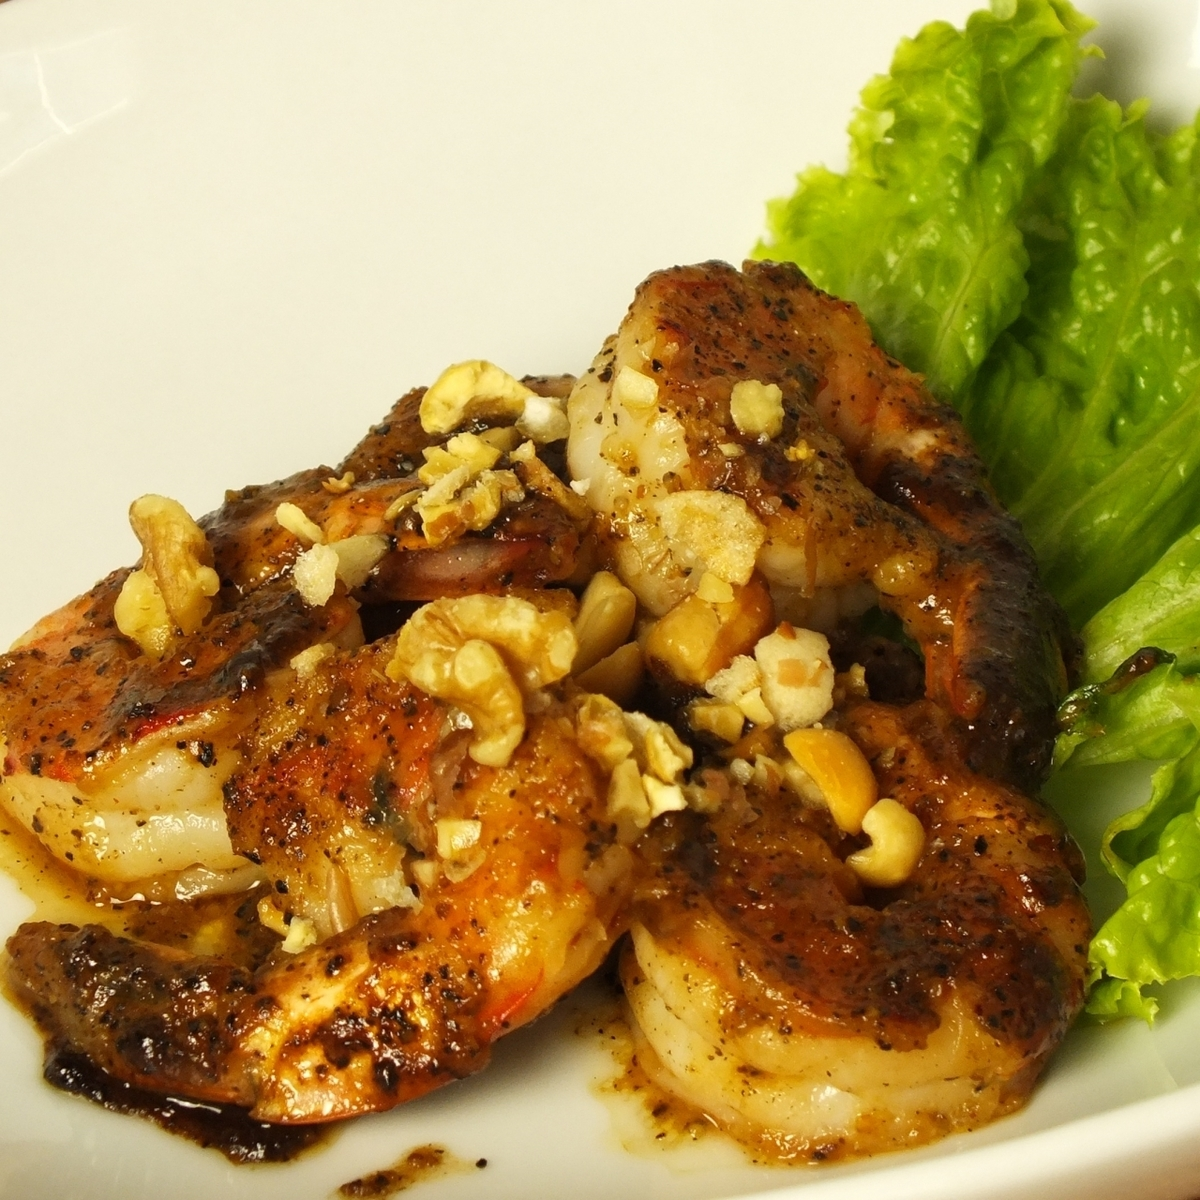 Stir-fried shrimp with Singaporean pepper [Dry]